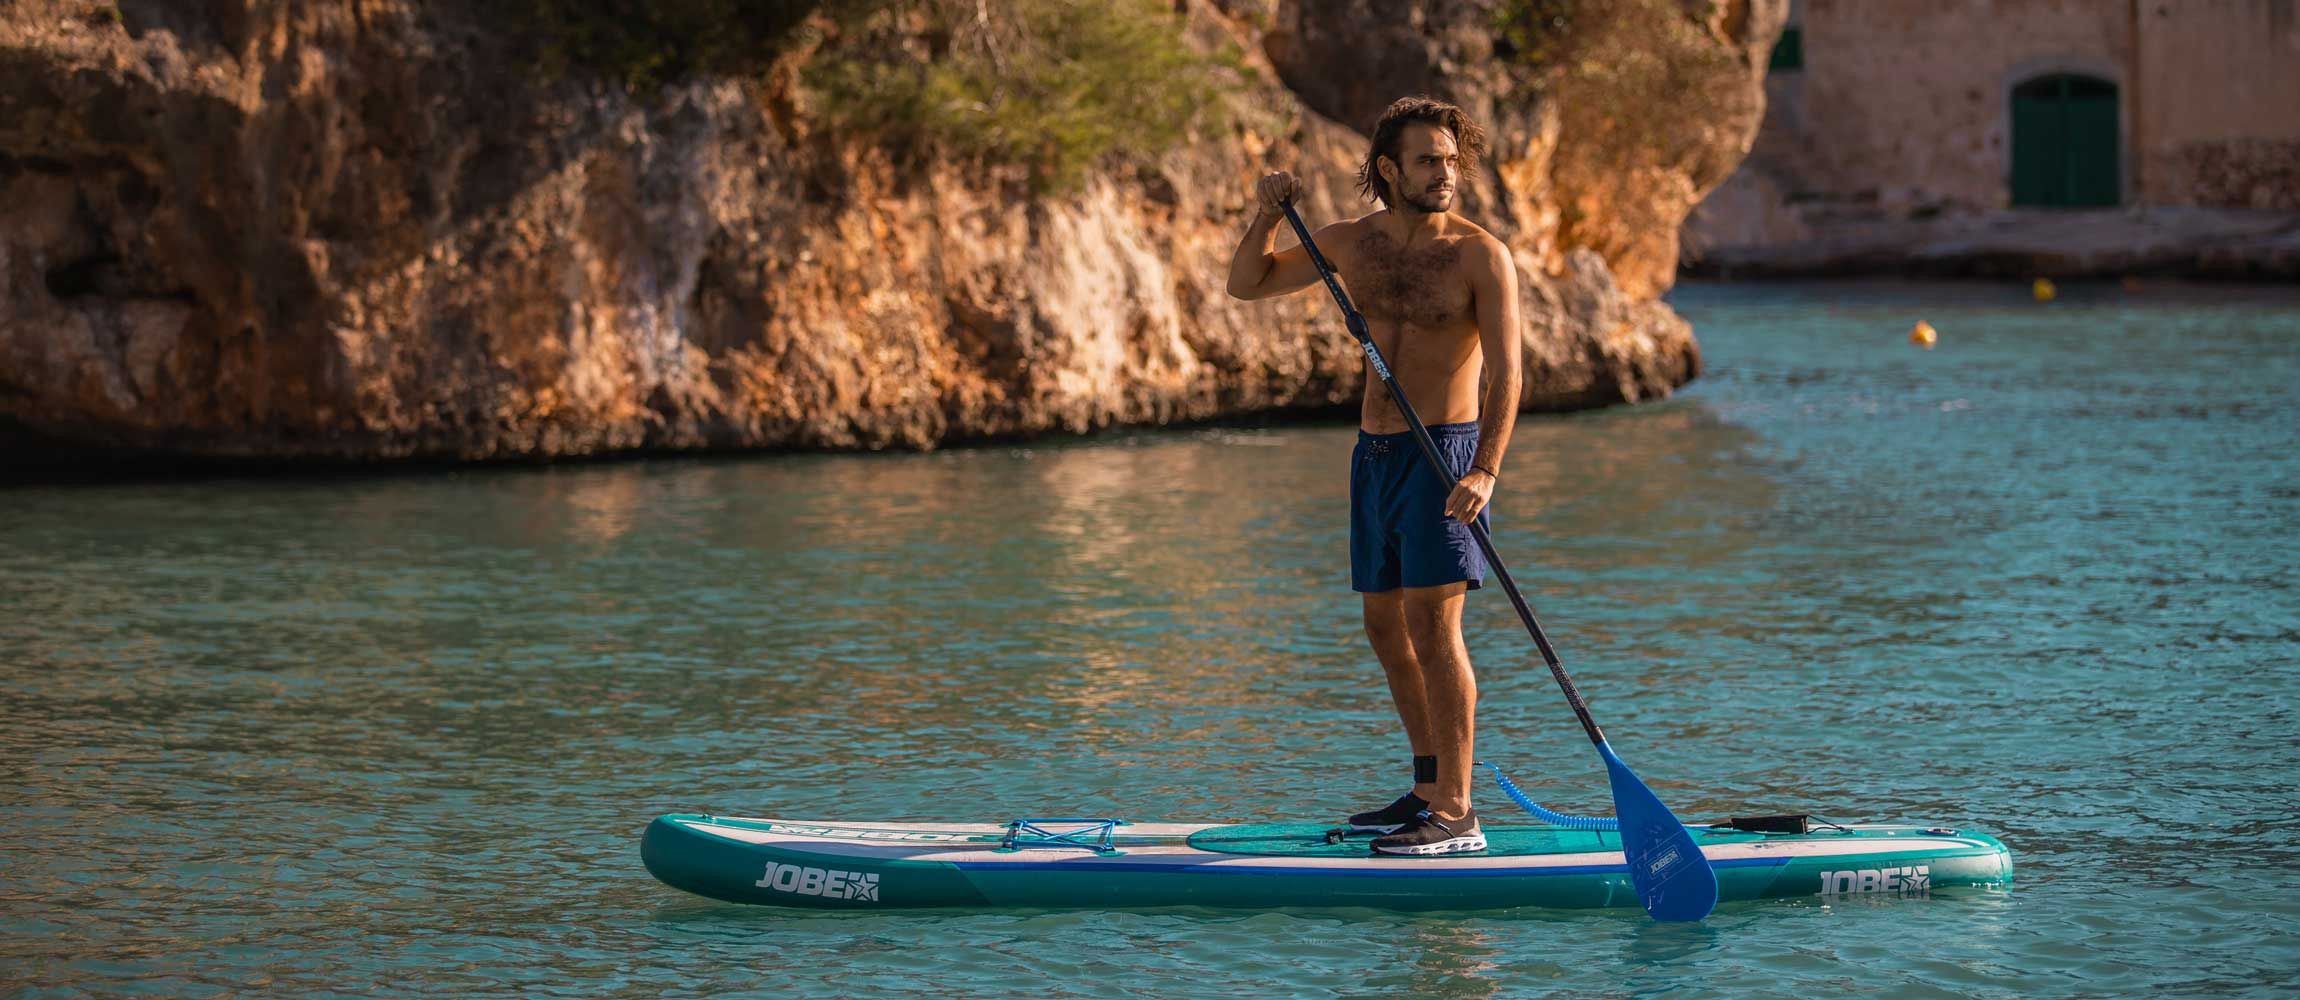 Jobe inflatable paddle board